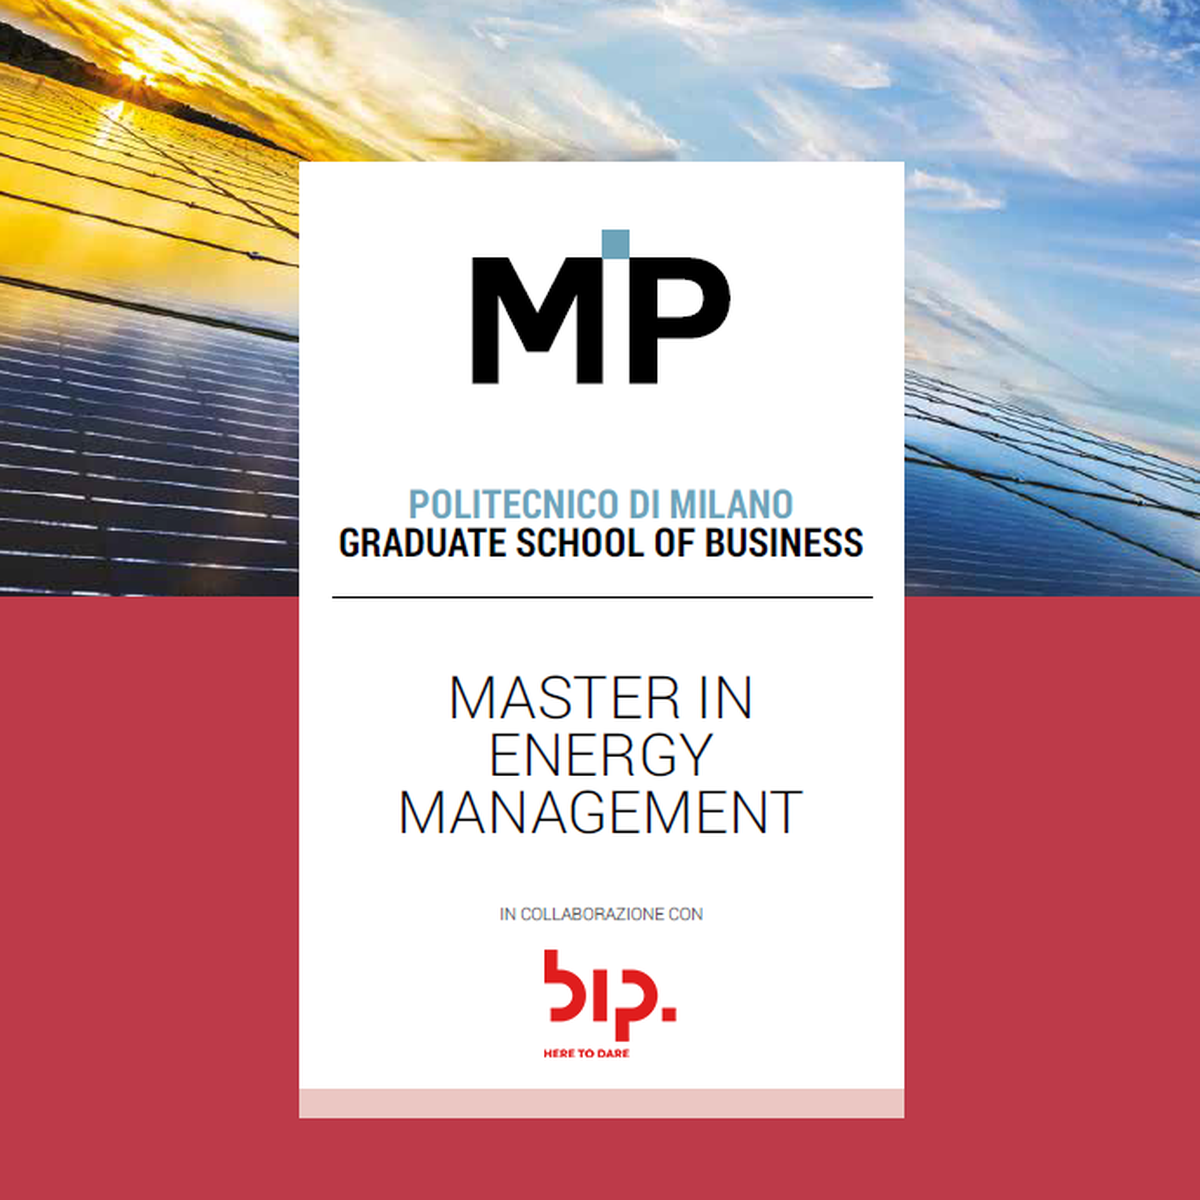 Master in Energy Management